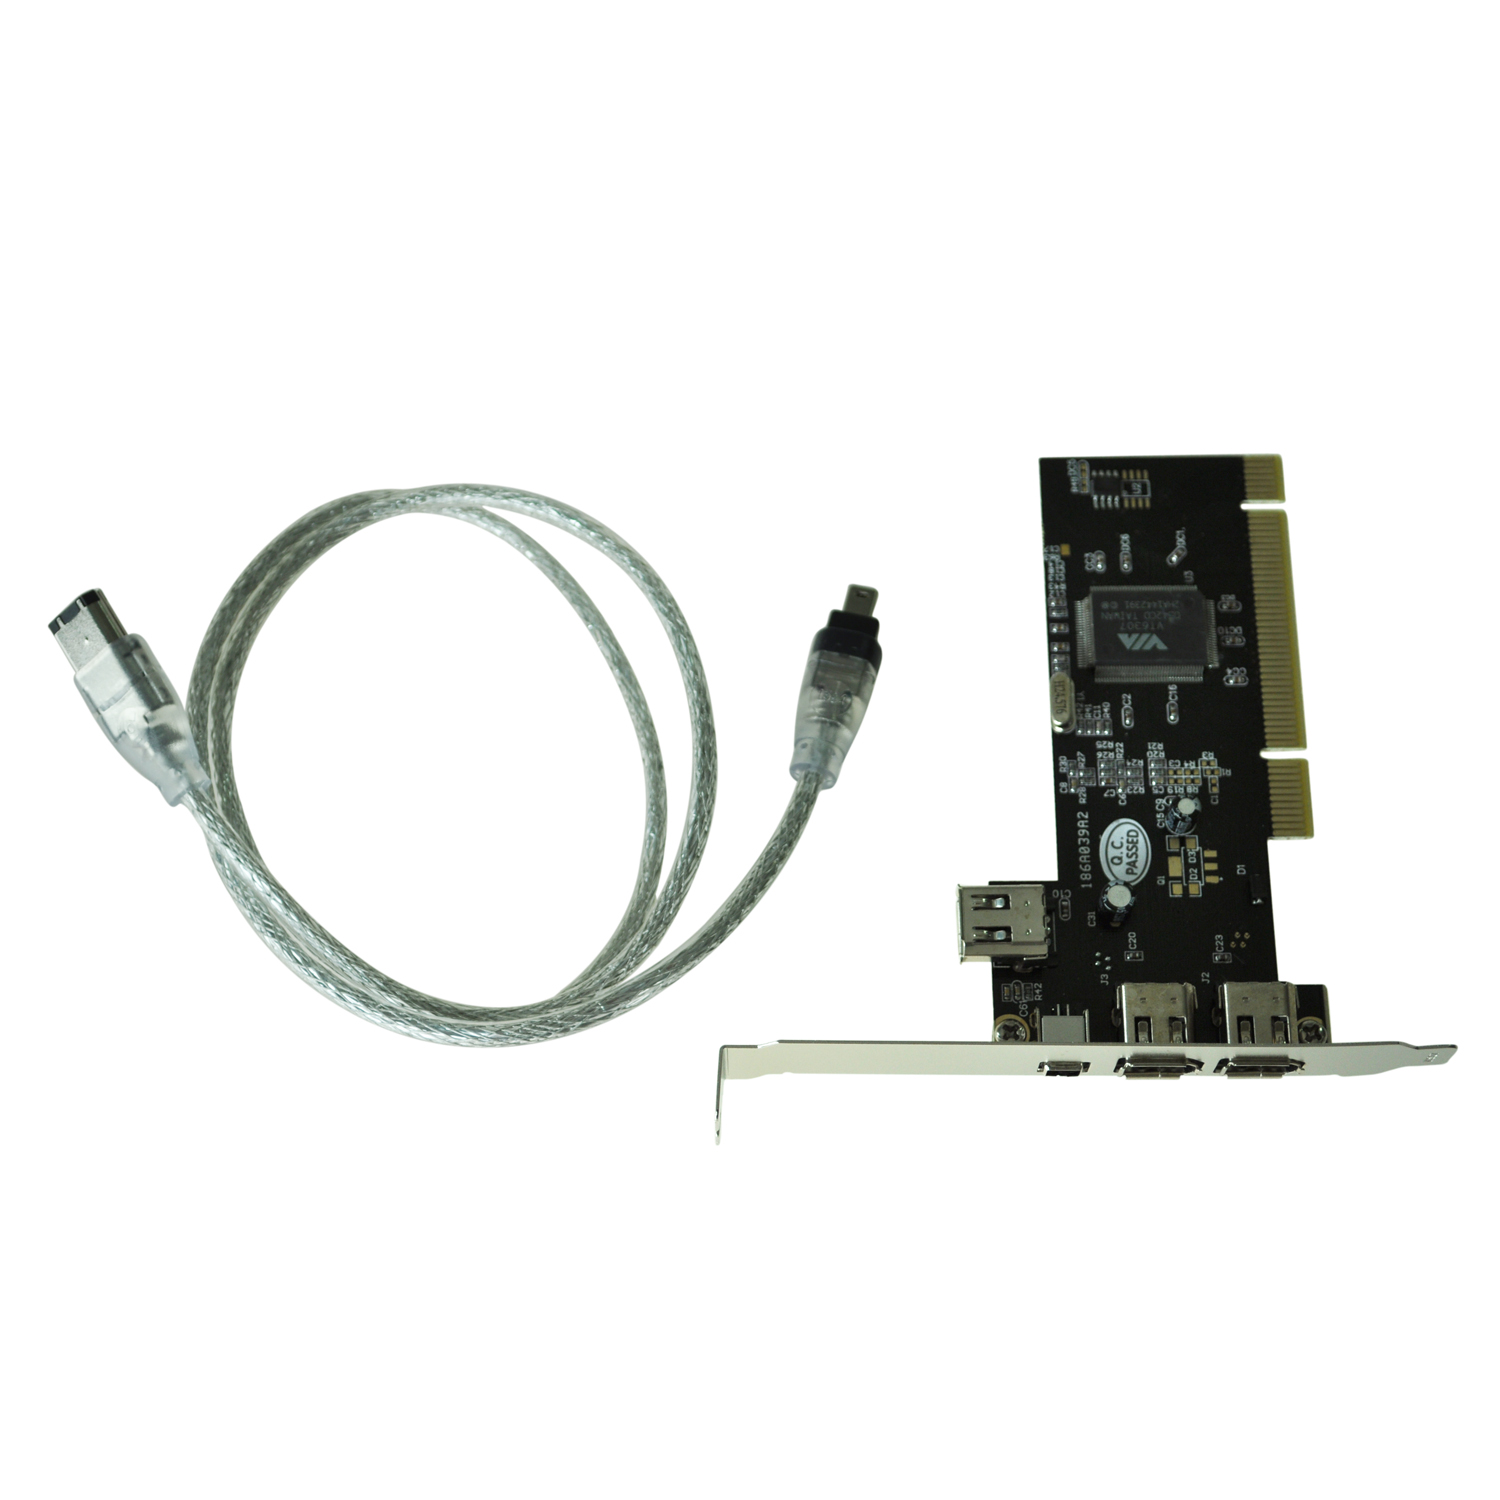 Pci Firewire Ieee 3 1 Port Card 4 6 Pin Cable Uk